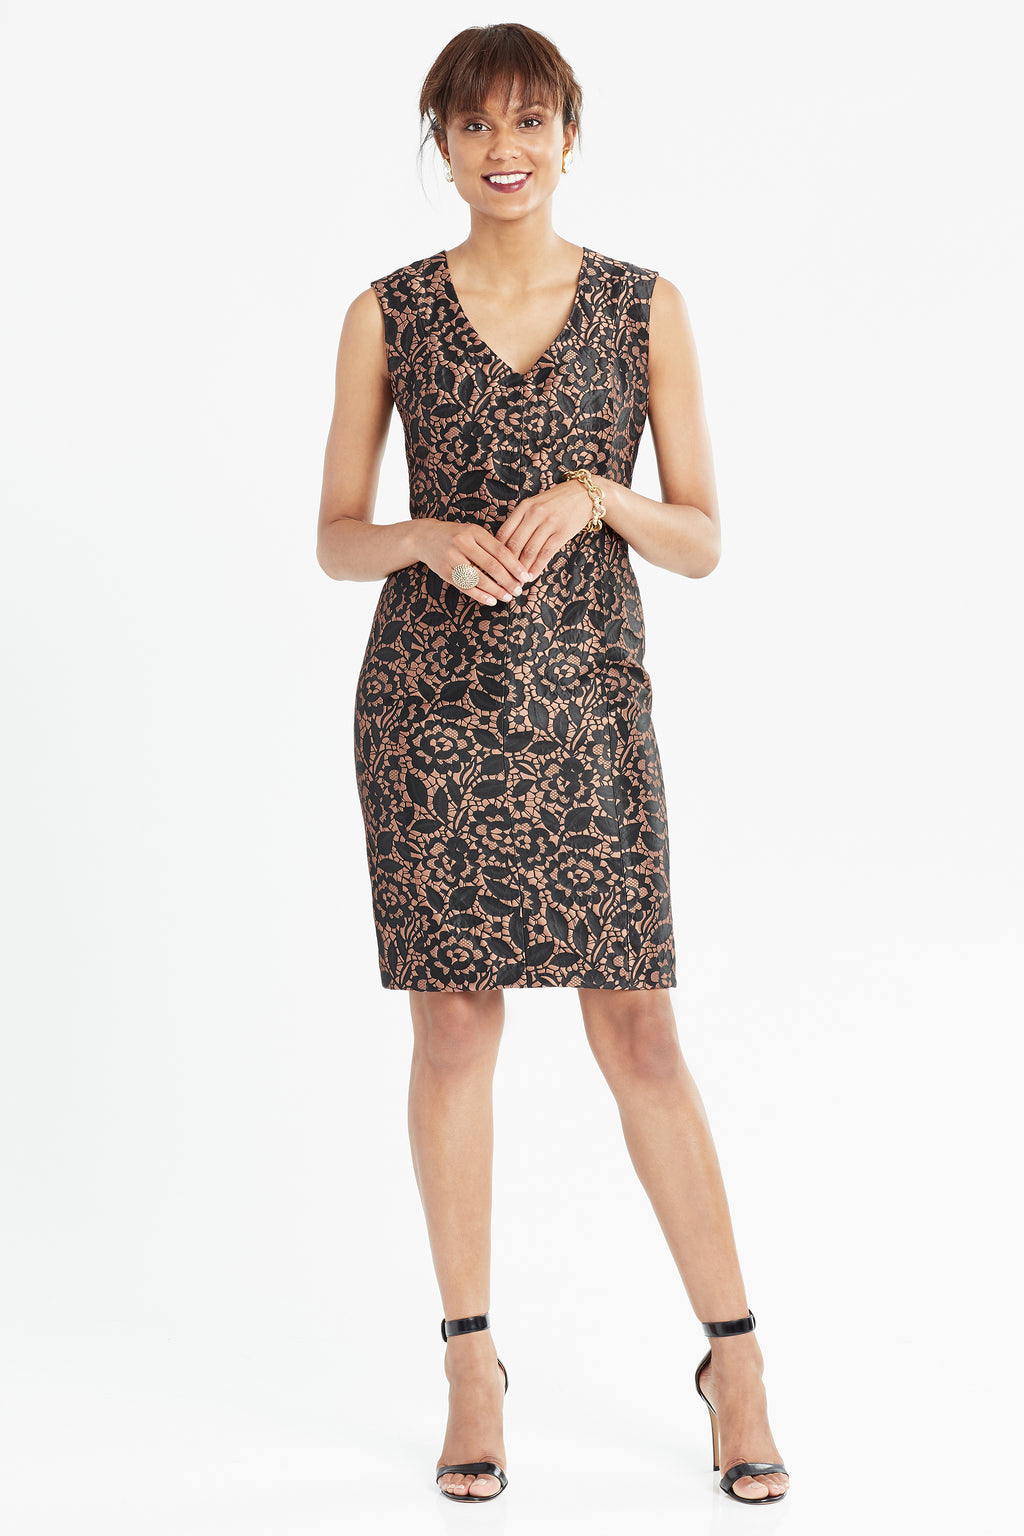 Brocade sheath dress in black and copper